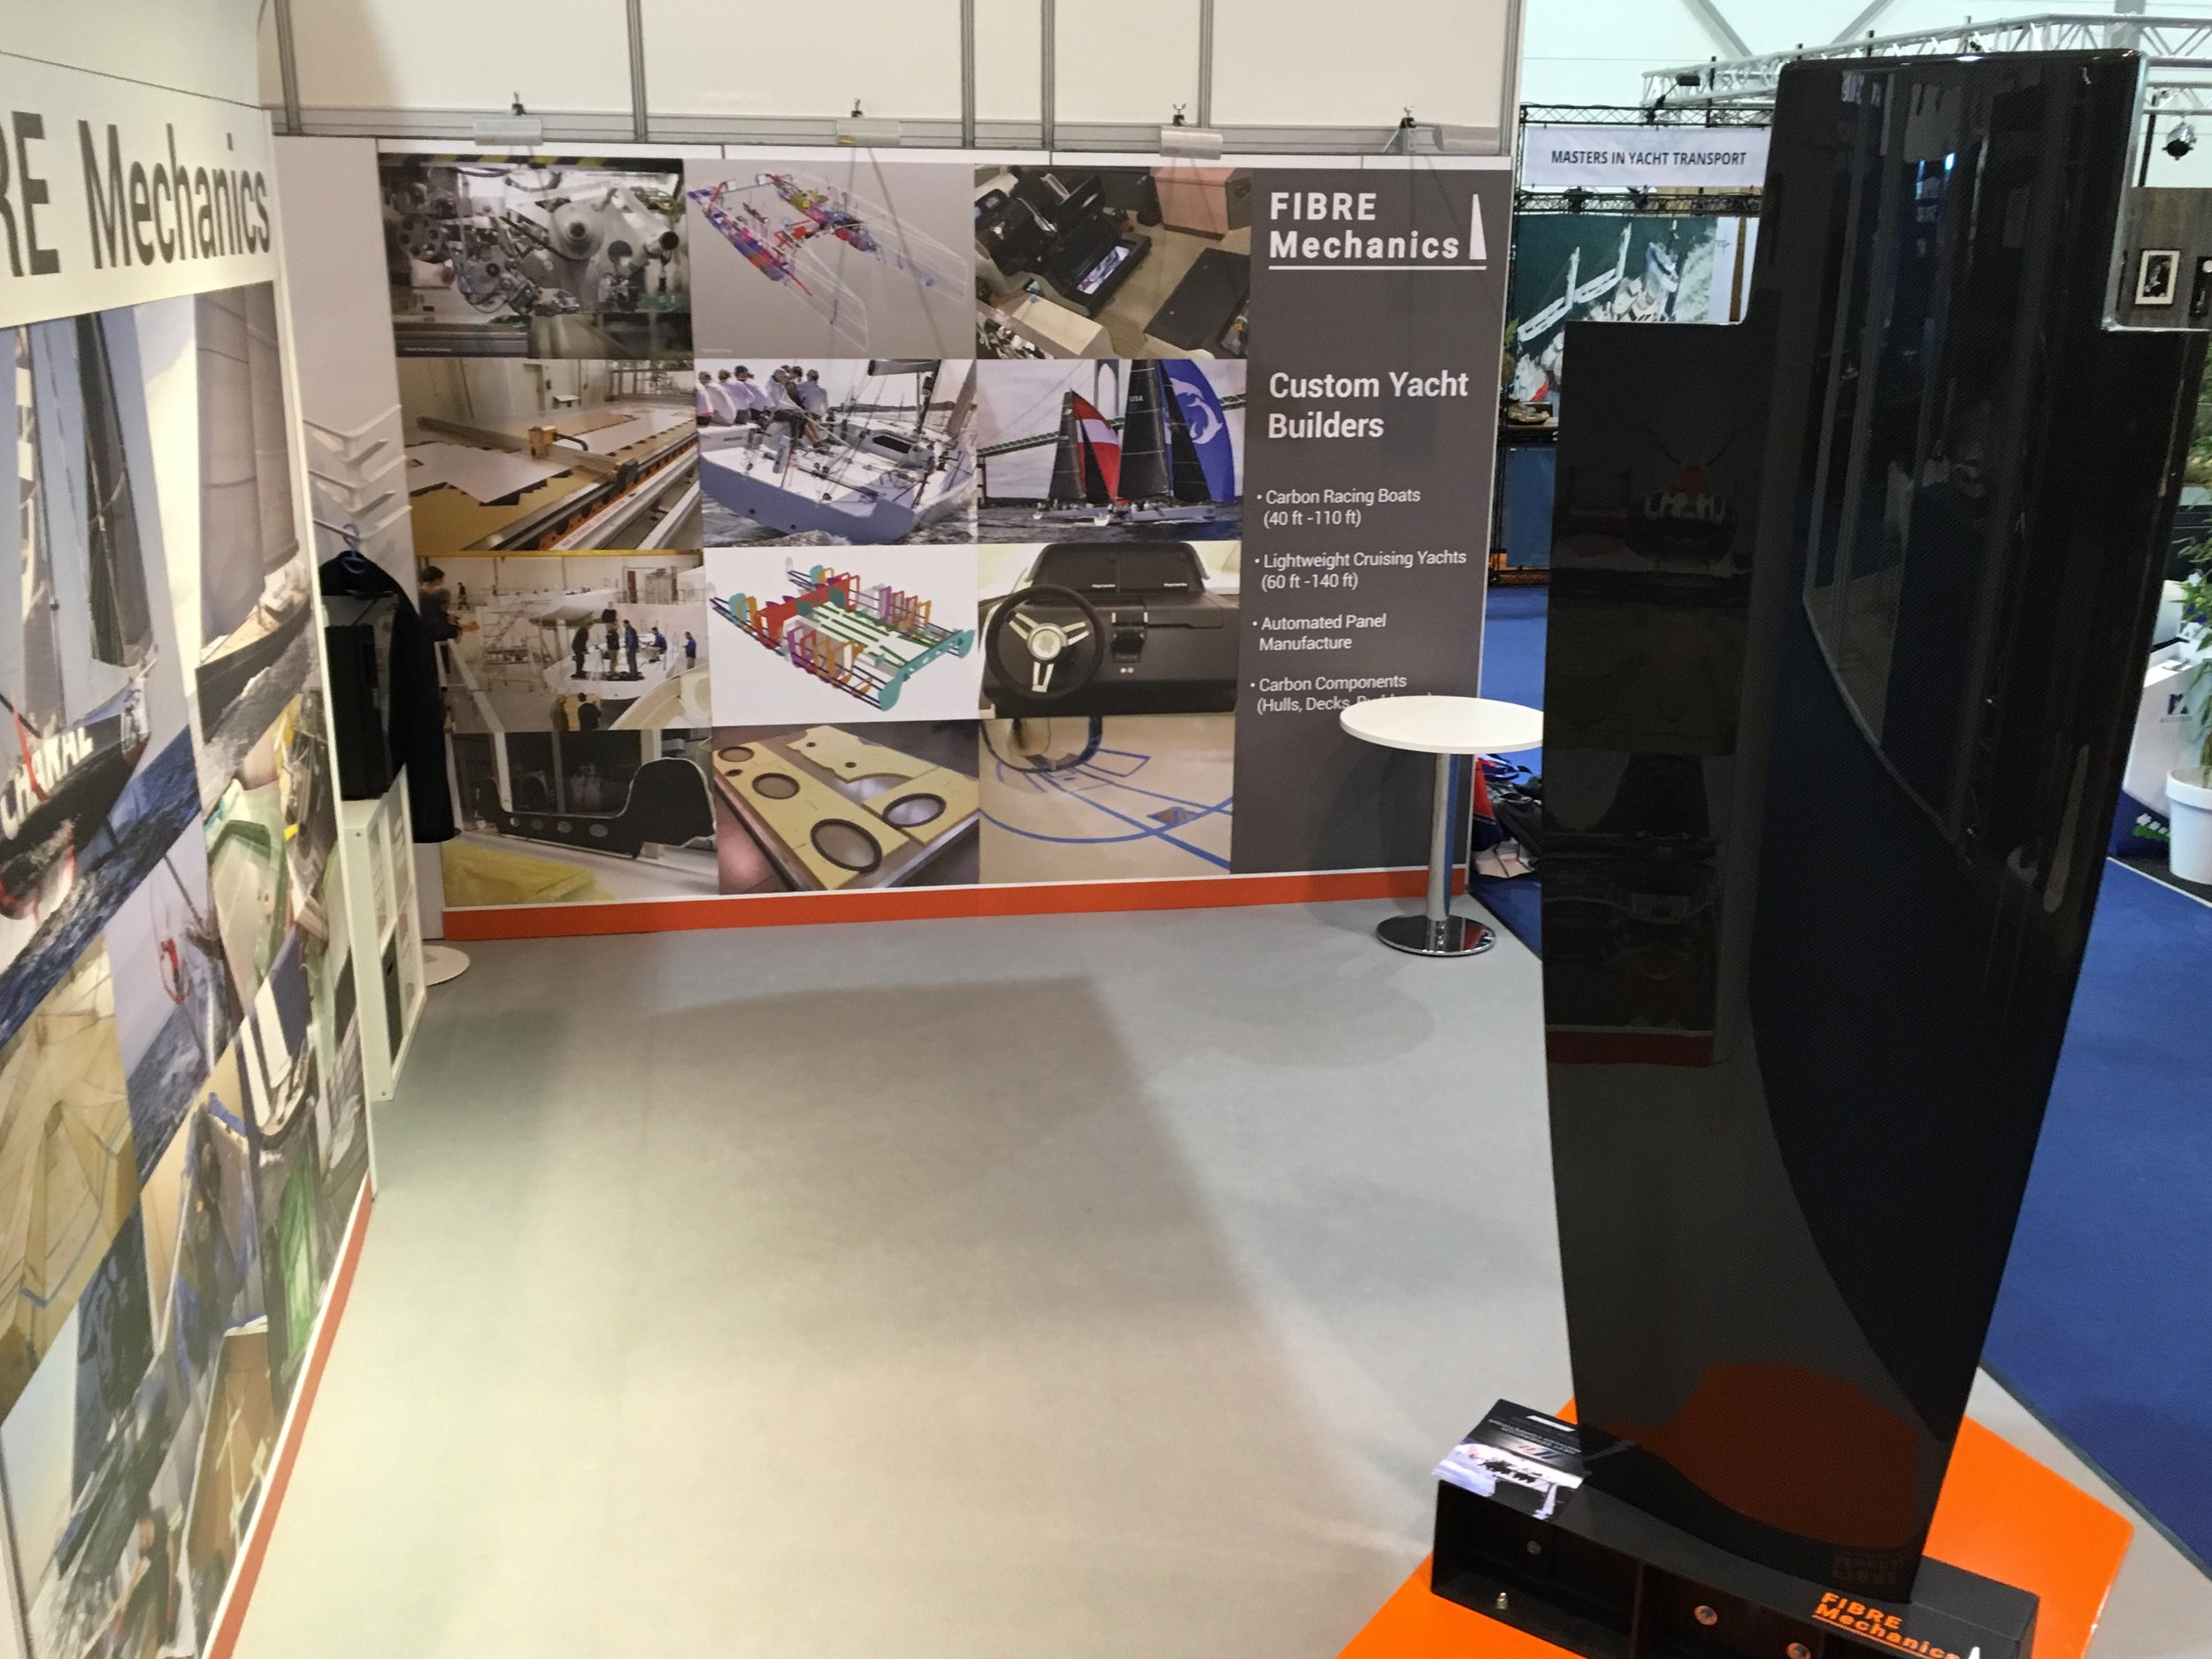 IC-37 keel at Boot Dusseldorf - you will find us in Hall 7a Stand C10